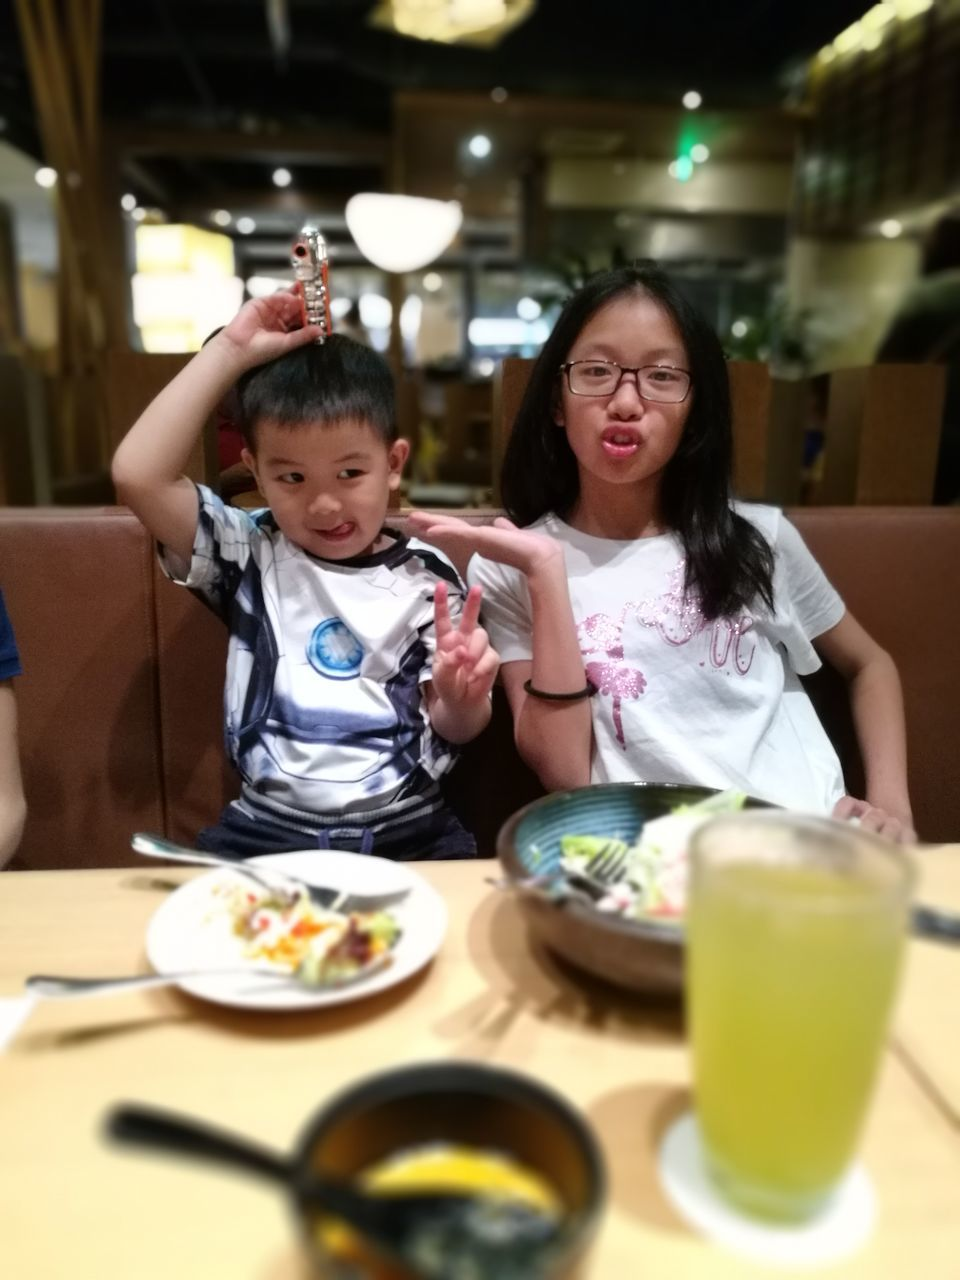 Portrait Of Sister With Brother In Restaurant